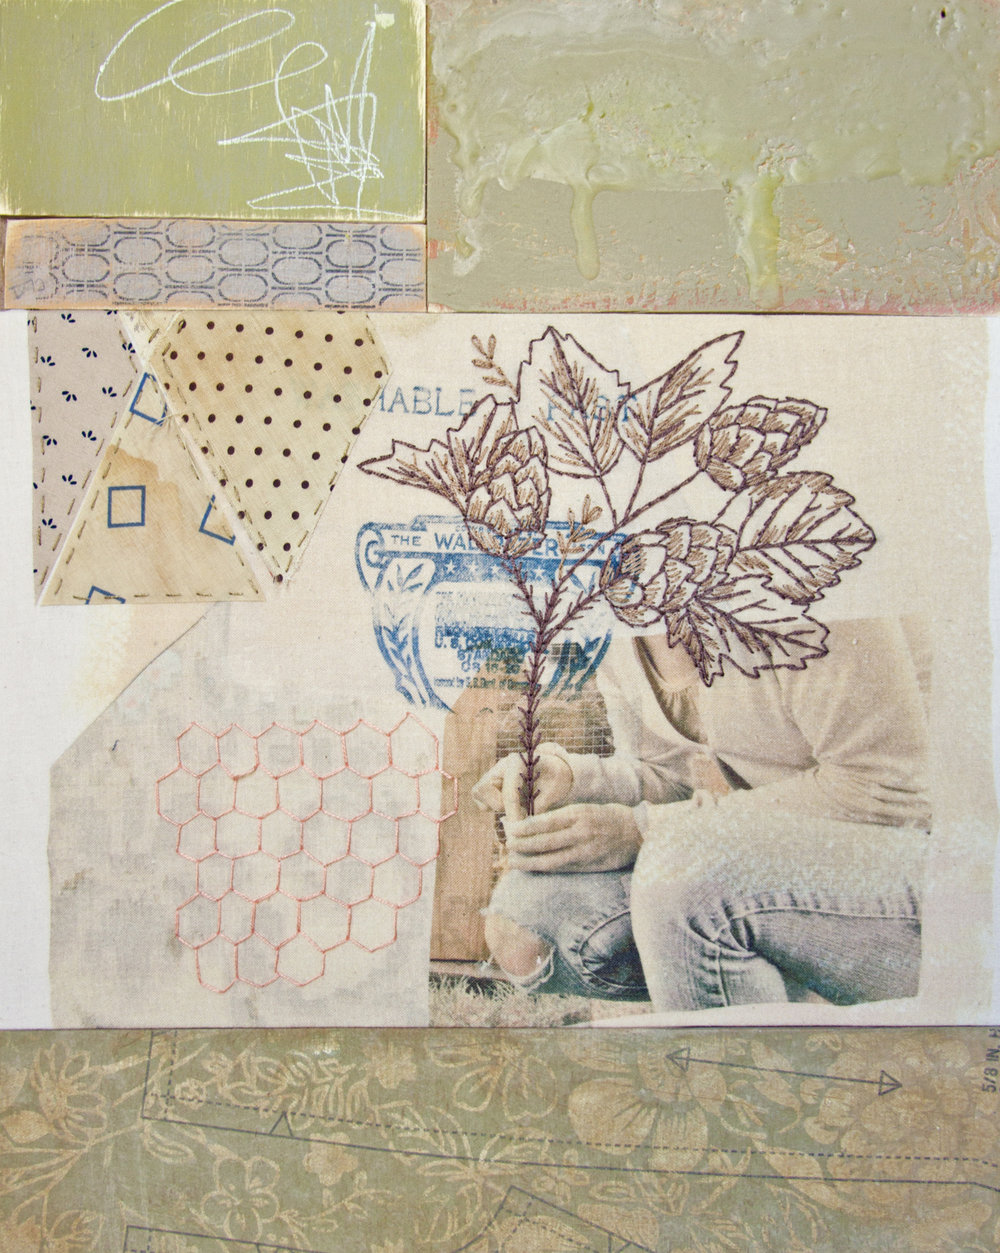 Chelsea Revelle,  Clifton: From Memory Series,  Assemblage, 13x15.5